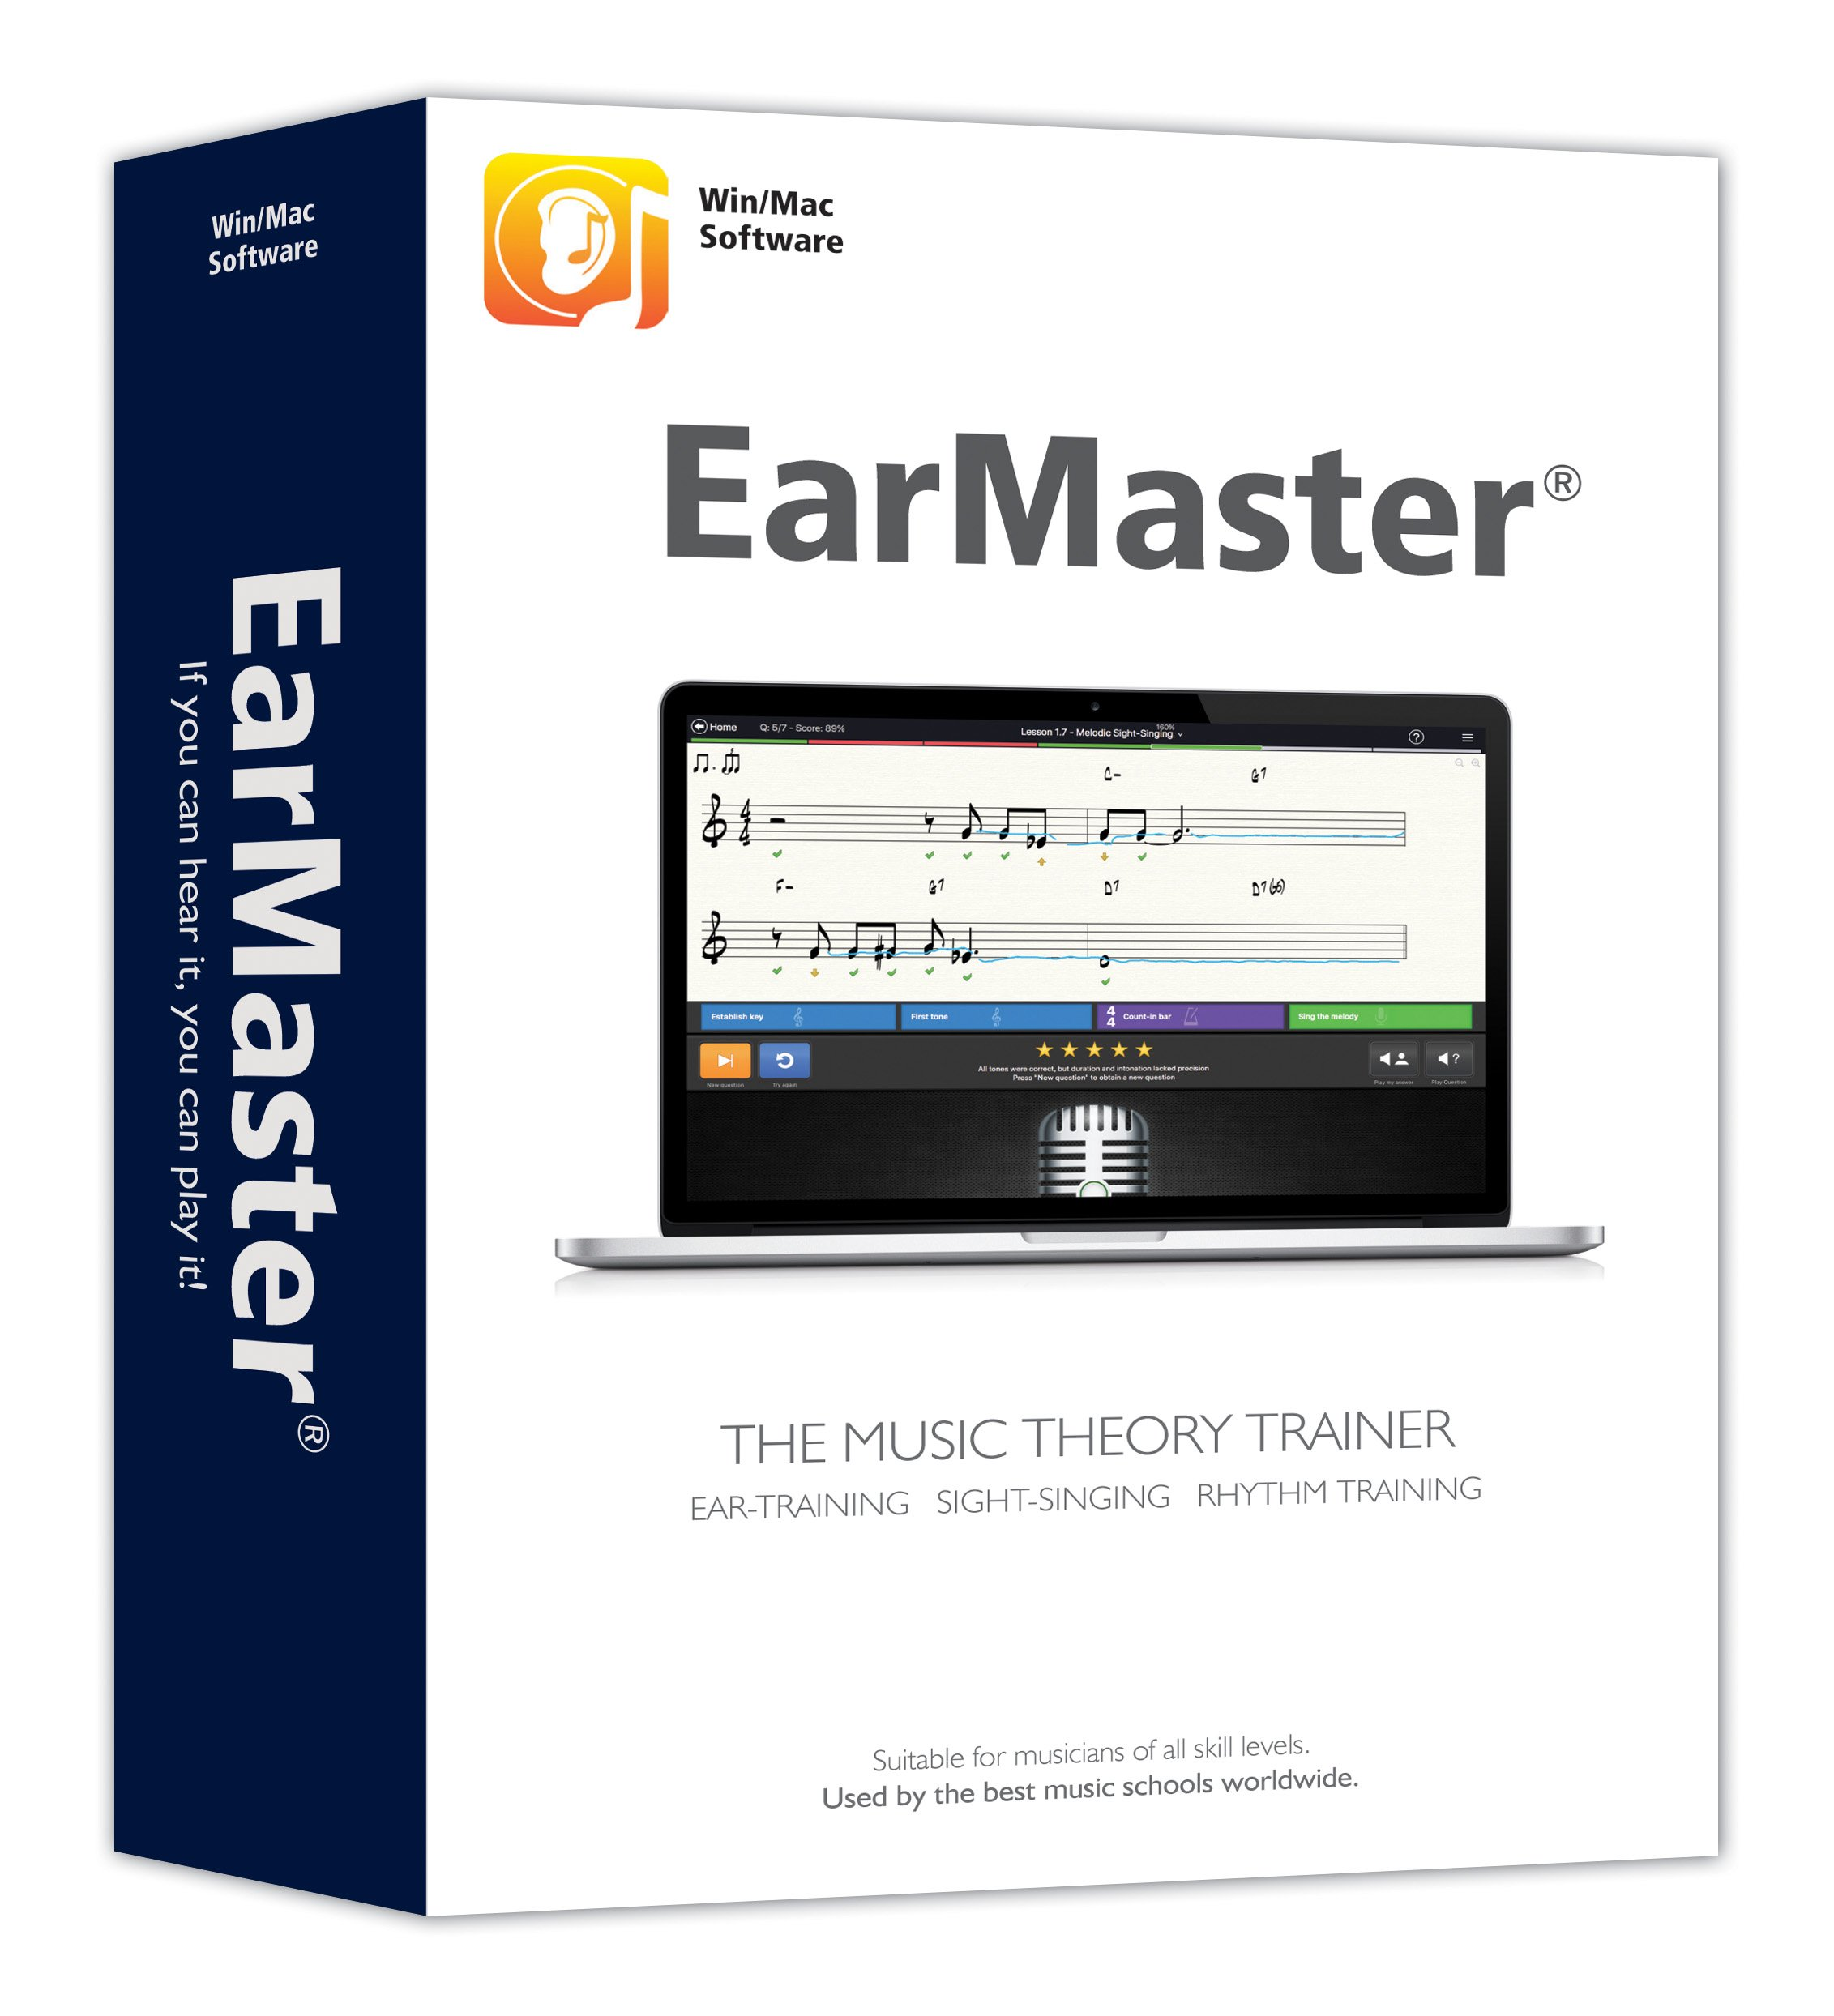 EarMaster 7 Professional - Ear Training, Sight-Singing, Rhythm Trainer by EarMaster ApS